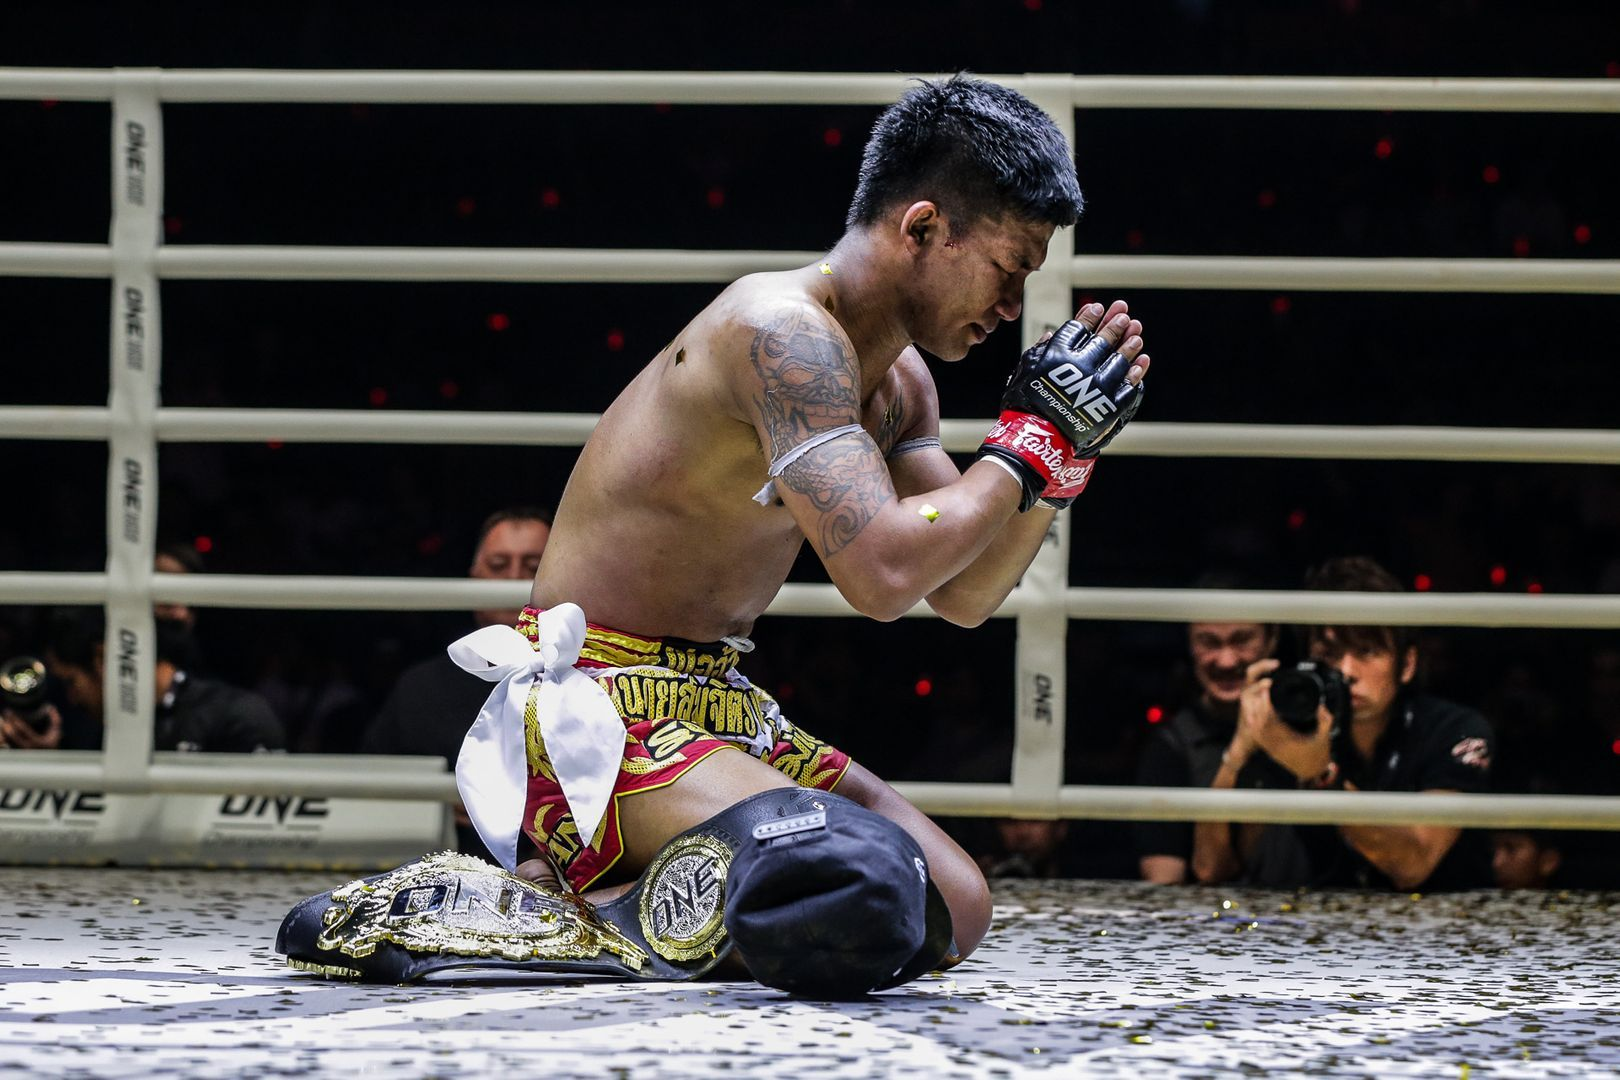 ONE Flyweight Muay Thai World Champion Rodtang Jitmuangnon is thankful following his big title win